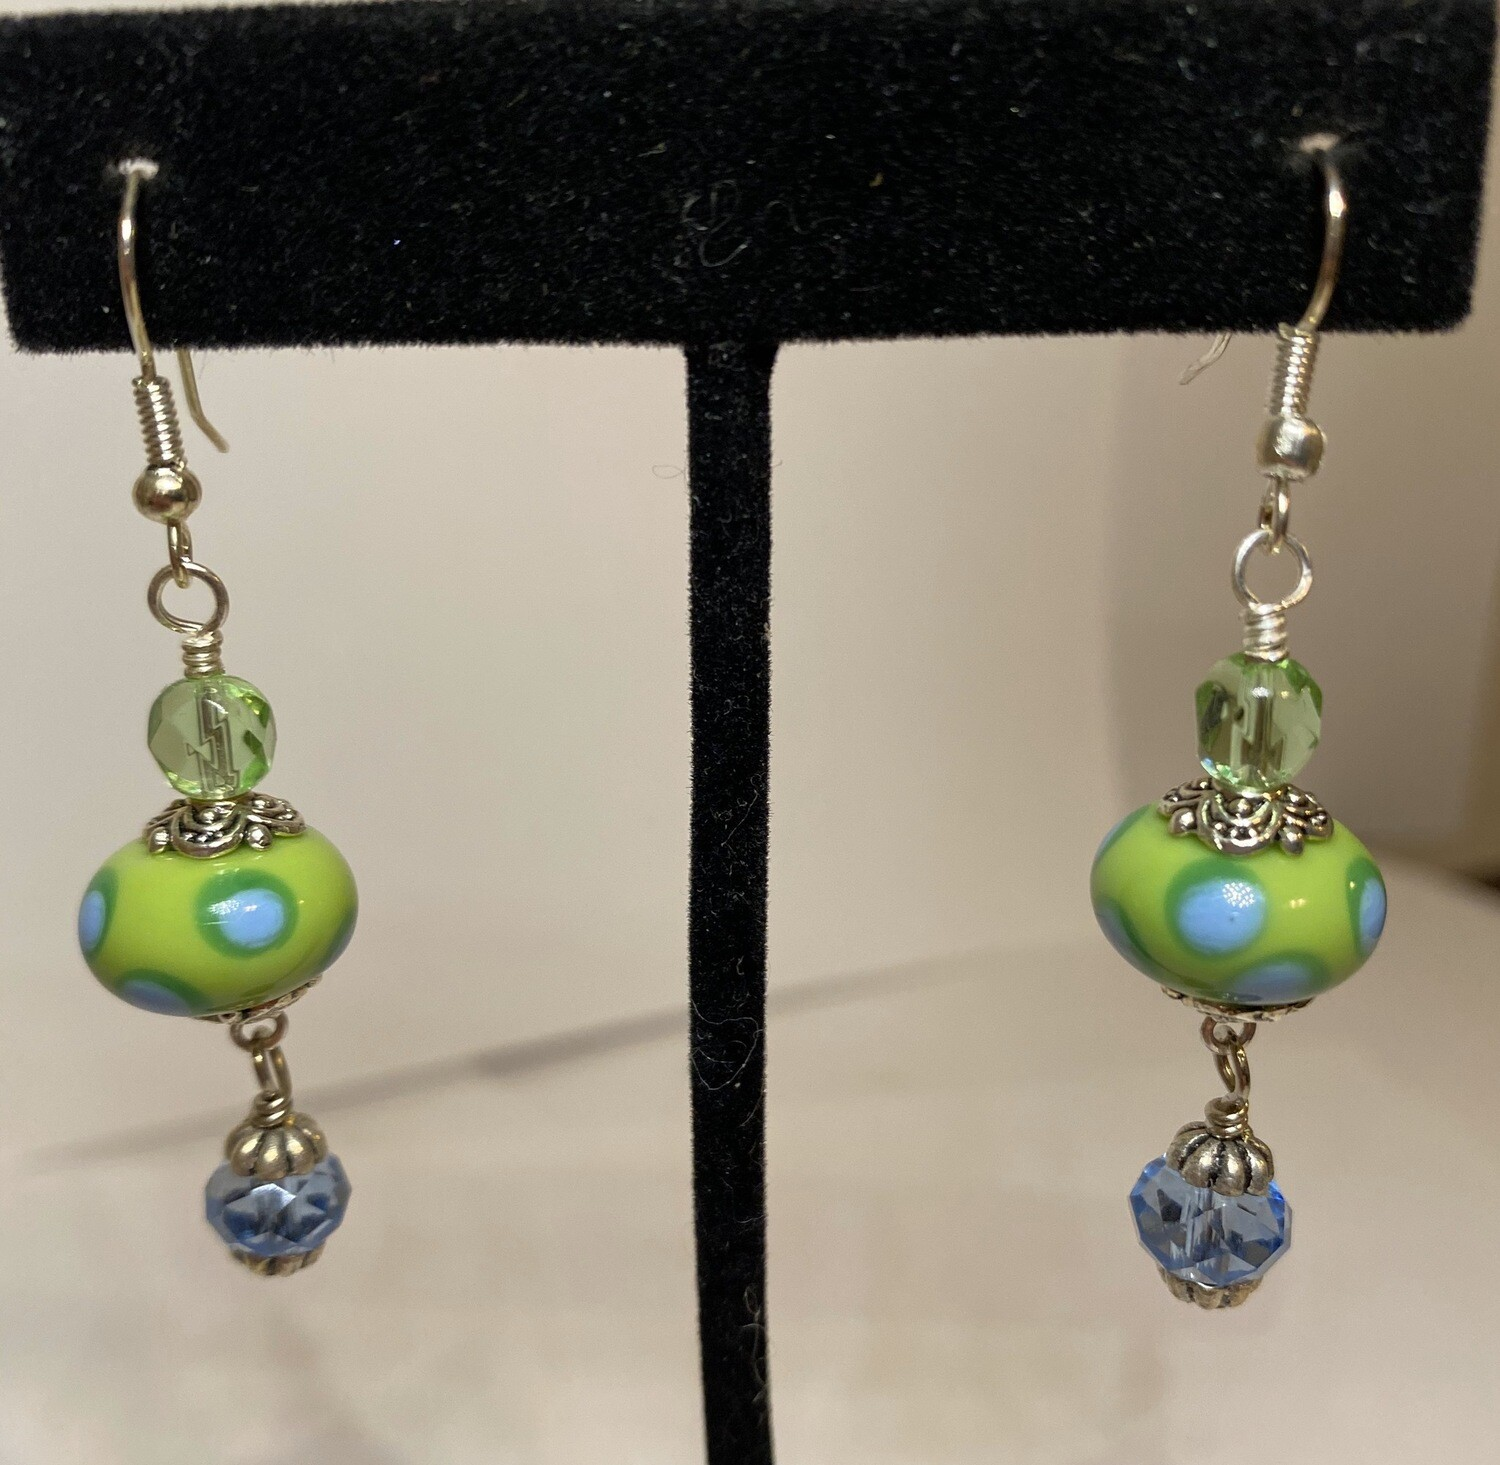 DK Lamp Work Acid Bead 1 Green 1 Baby Blue Crystals Earrings